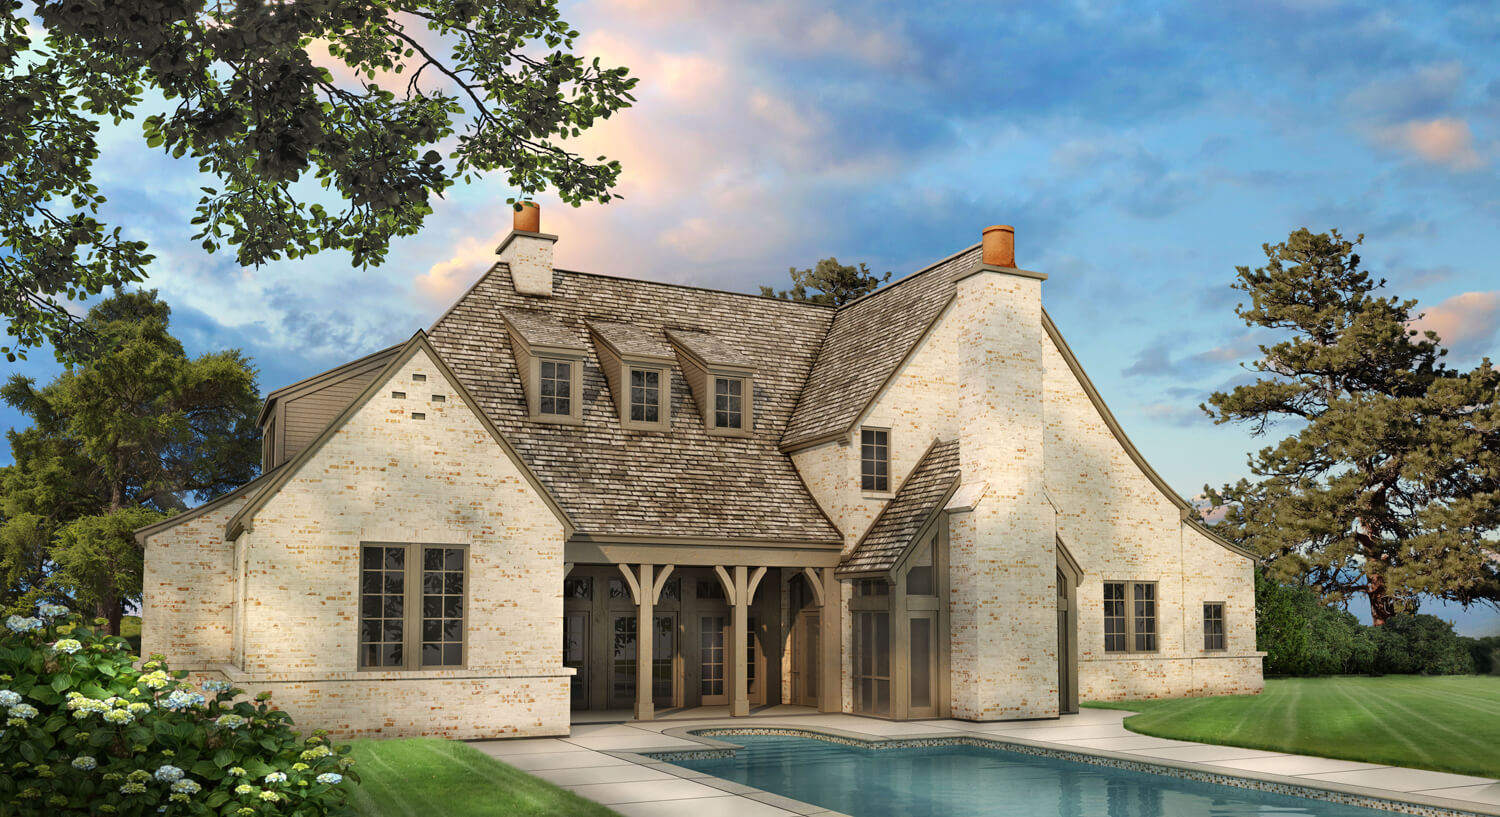 Designed by Foshee Architecture – Private Residence 1 Rear Perspective